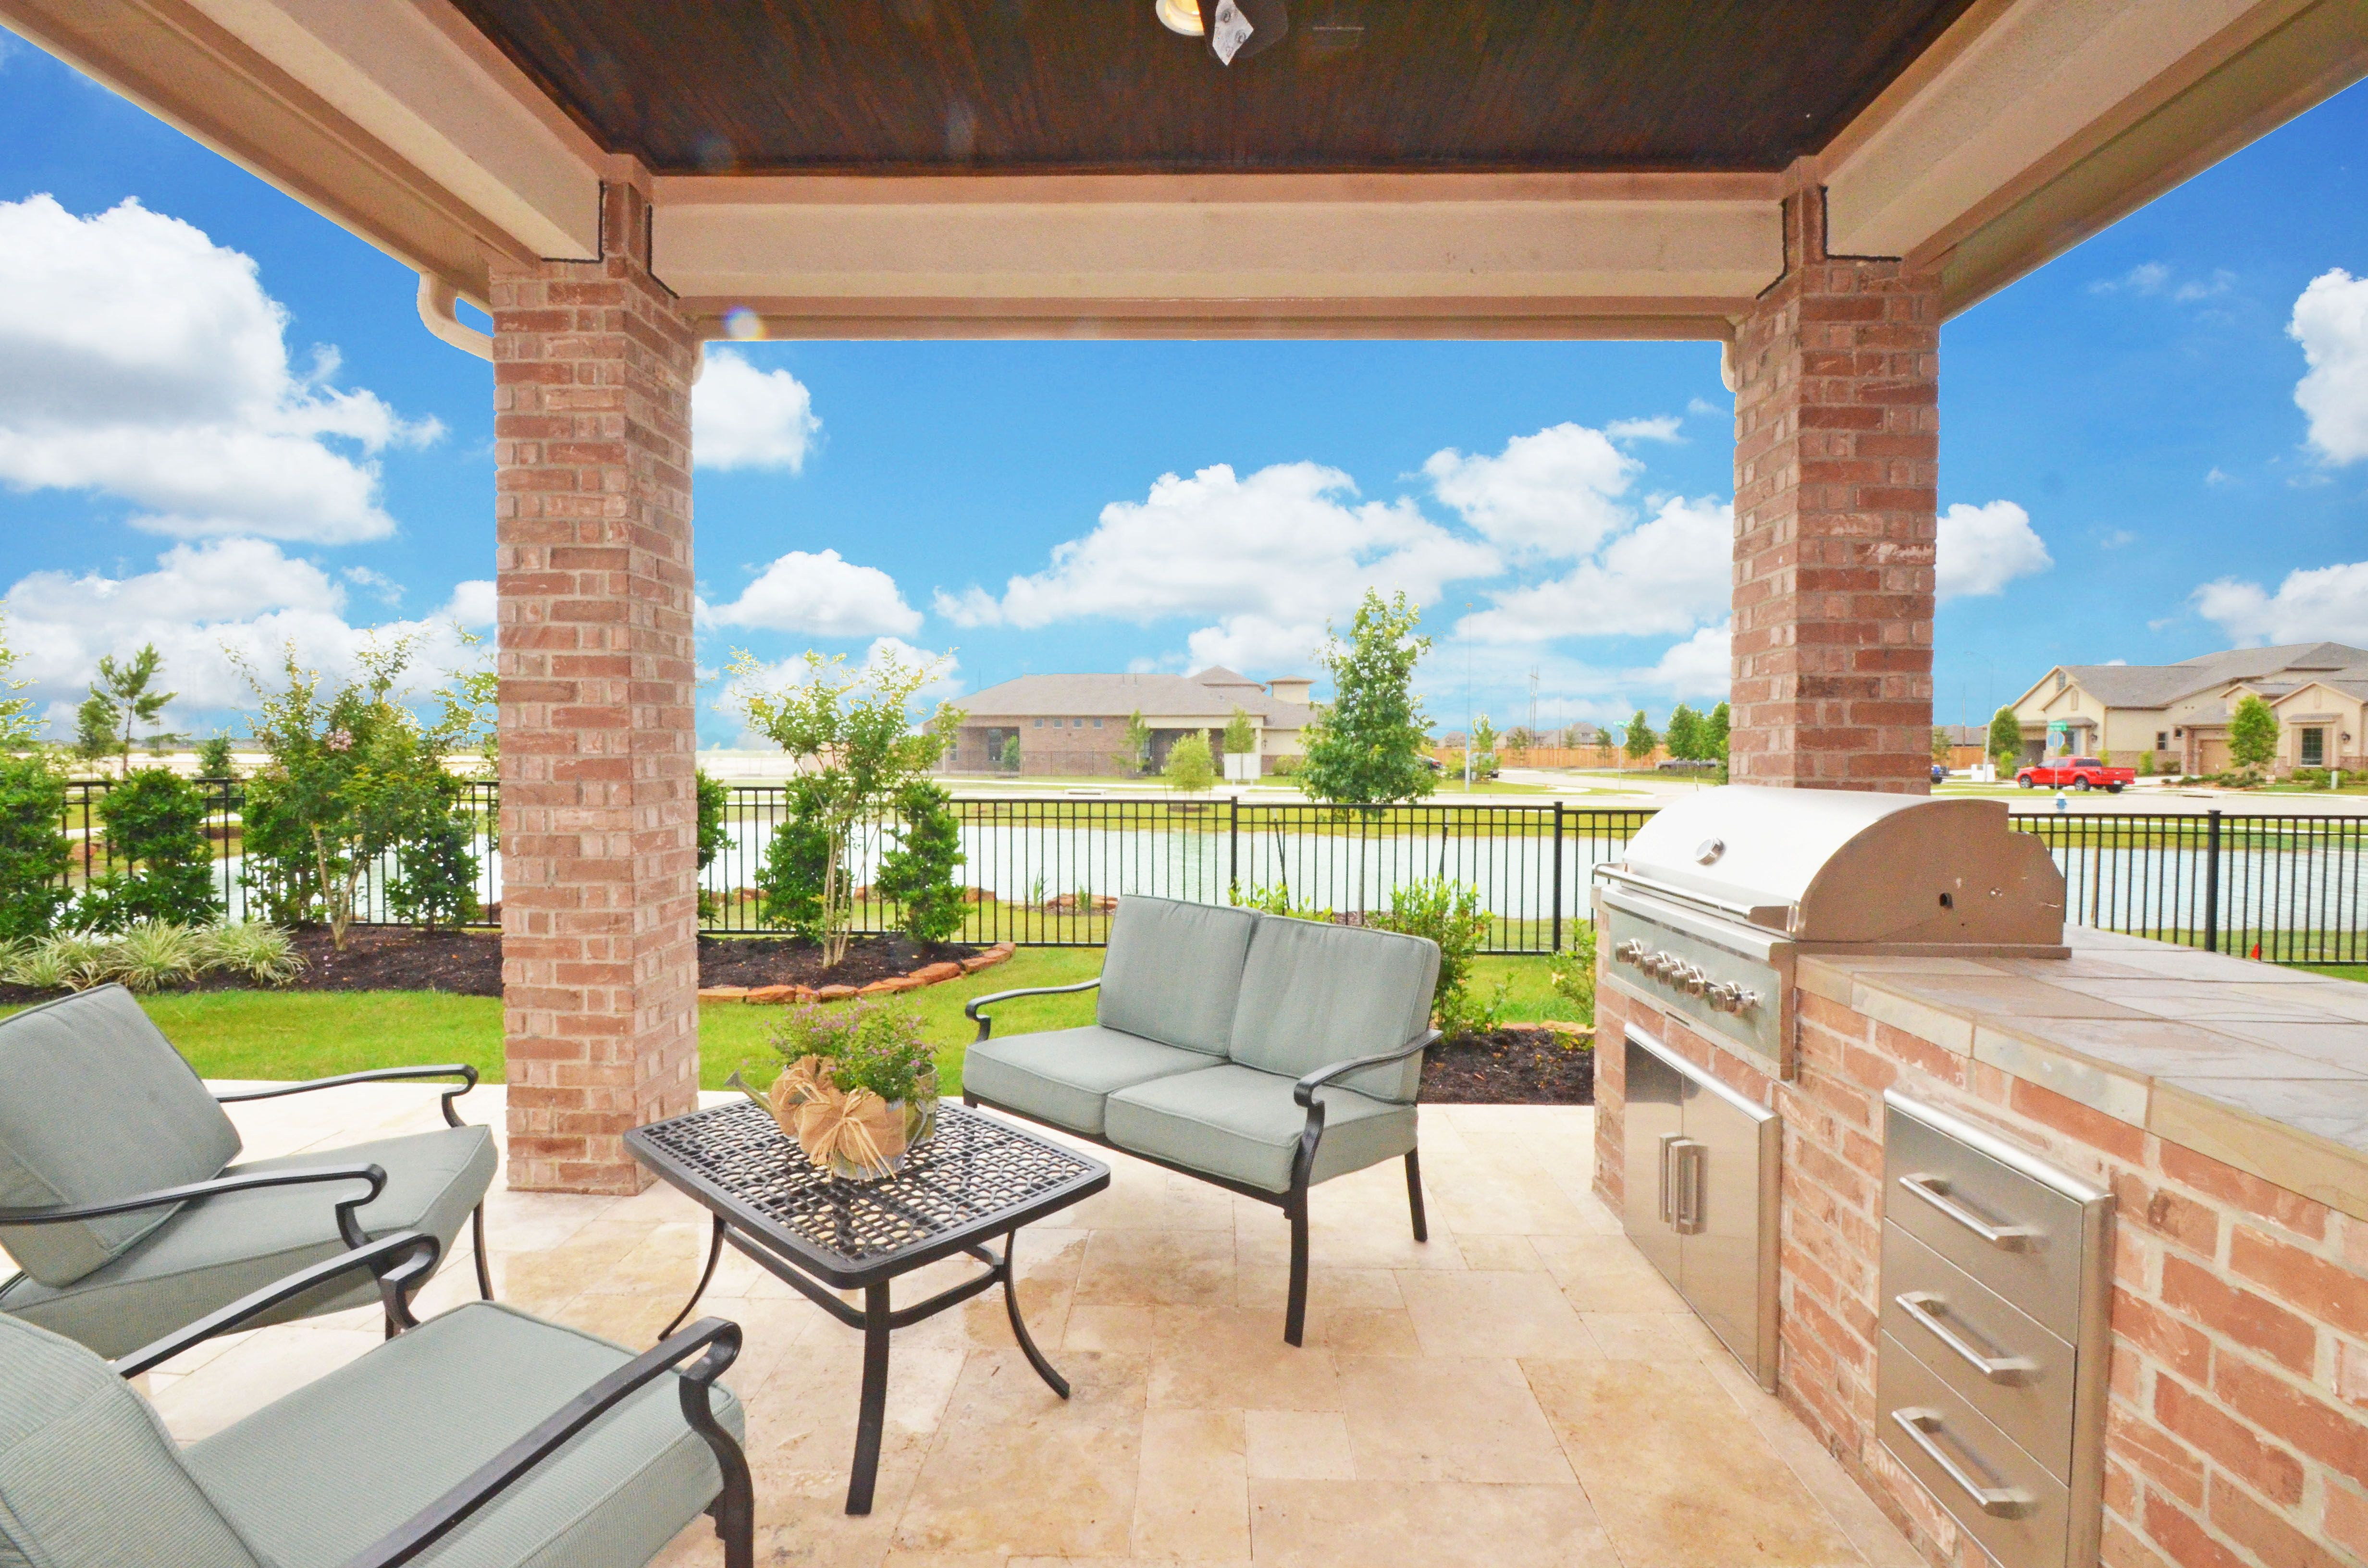 Villa Covered Patio Off Courtyard Entry   Homes By David Powers   La Bella  Cortile,